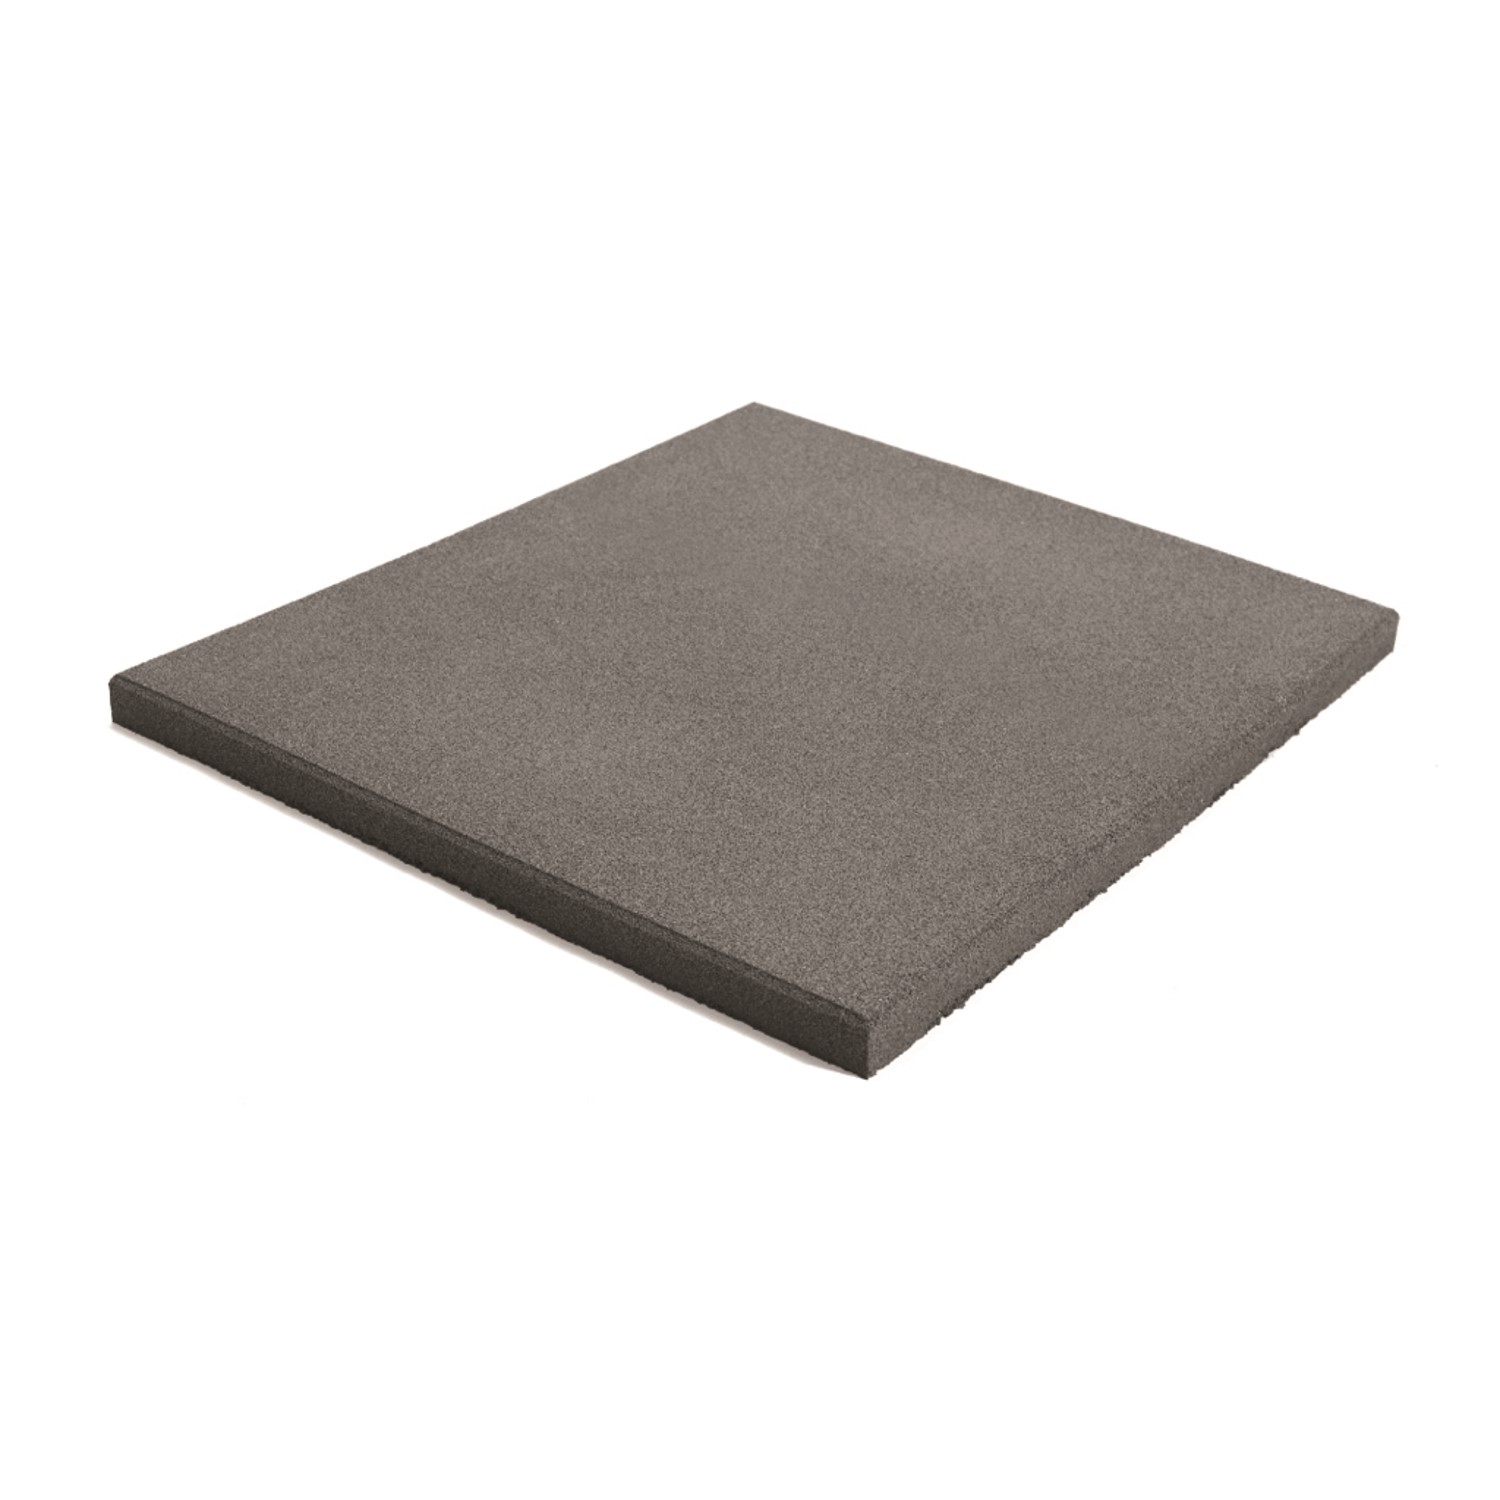 Jordan Activ Flooring (15mm) - Grey Tile